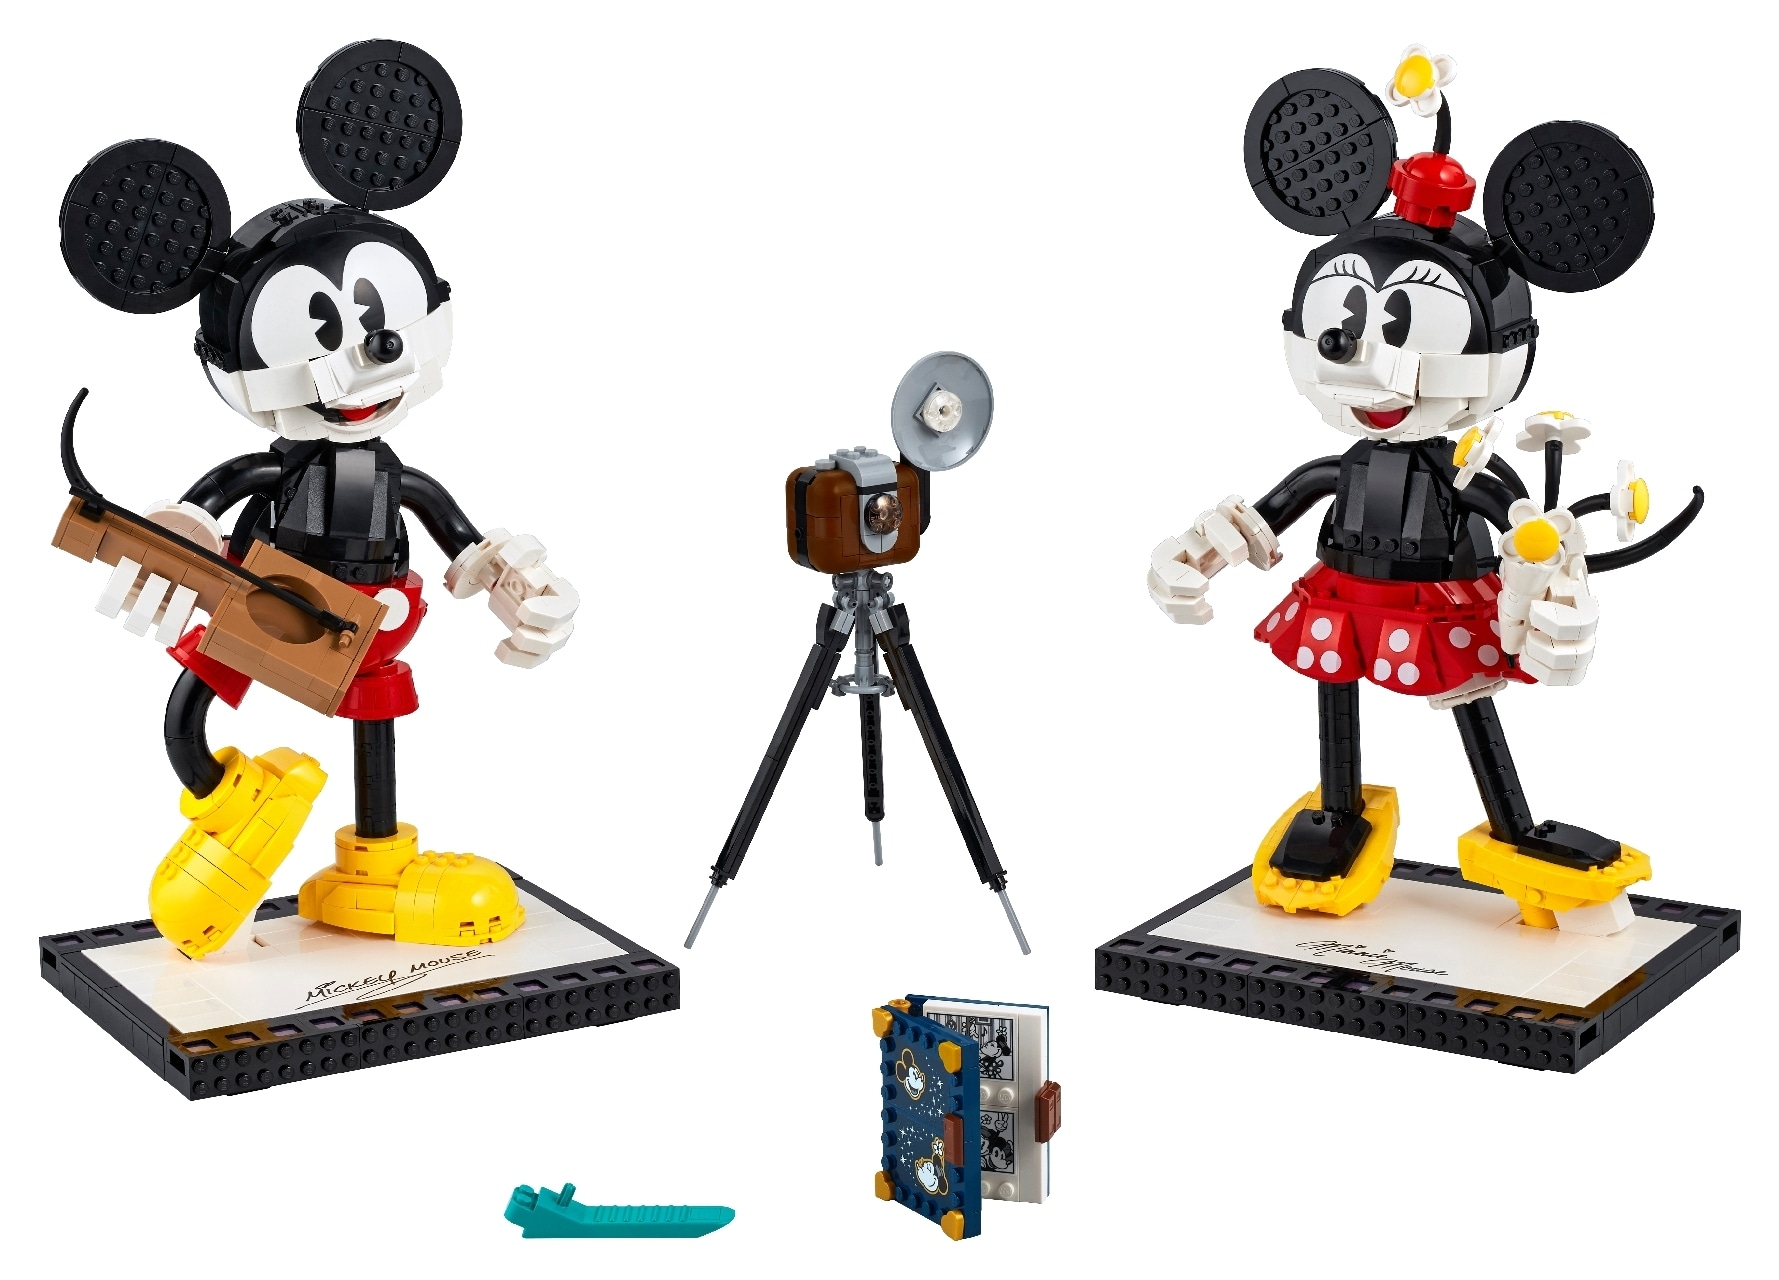 LEGO® Mickey Mouse & Minnie Mouse Buildable Characters